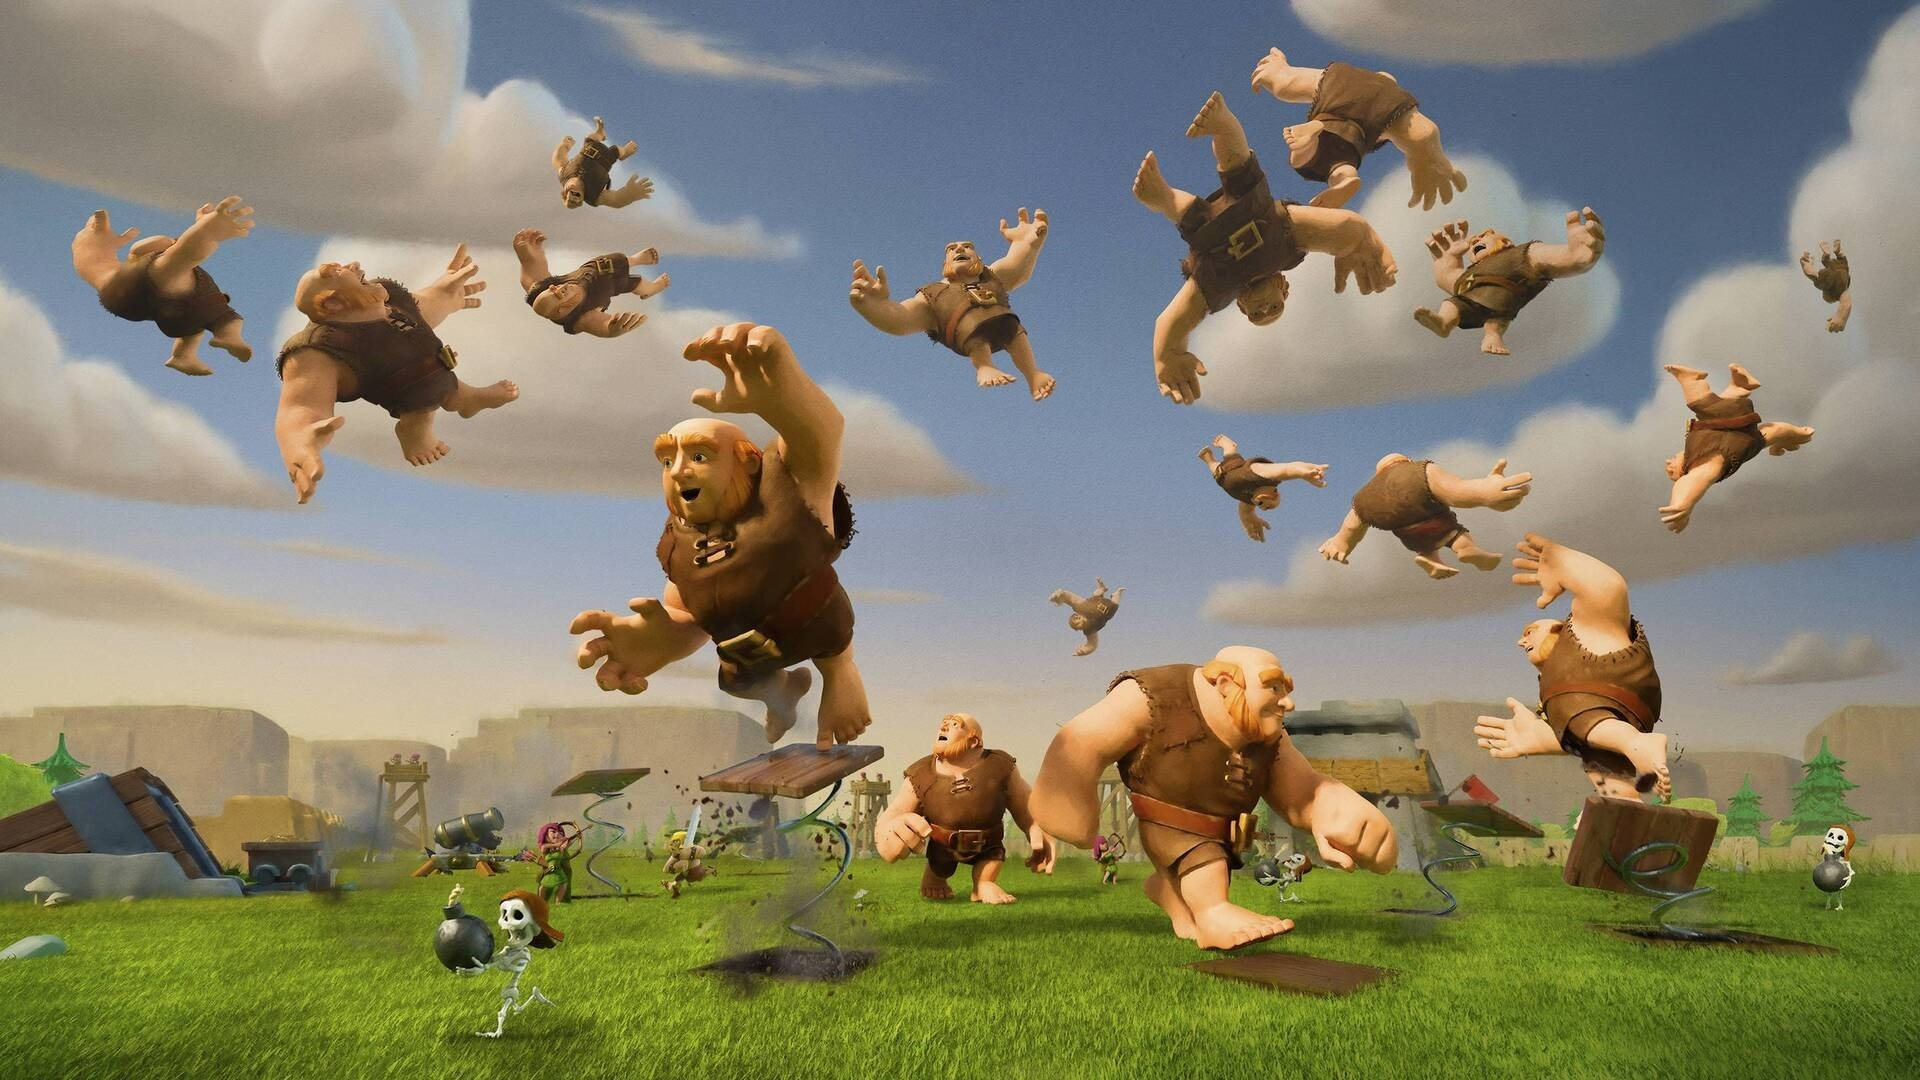 Clash Of Clans background wallpaper